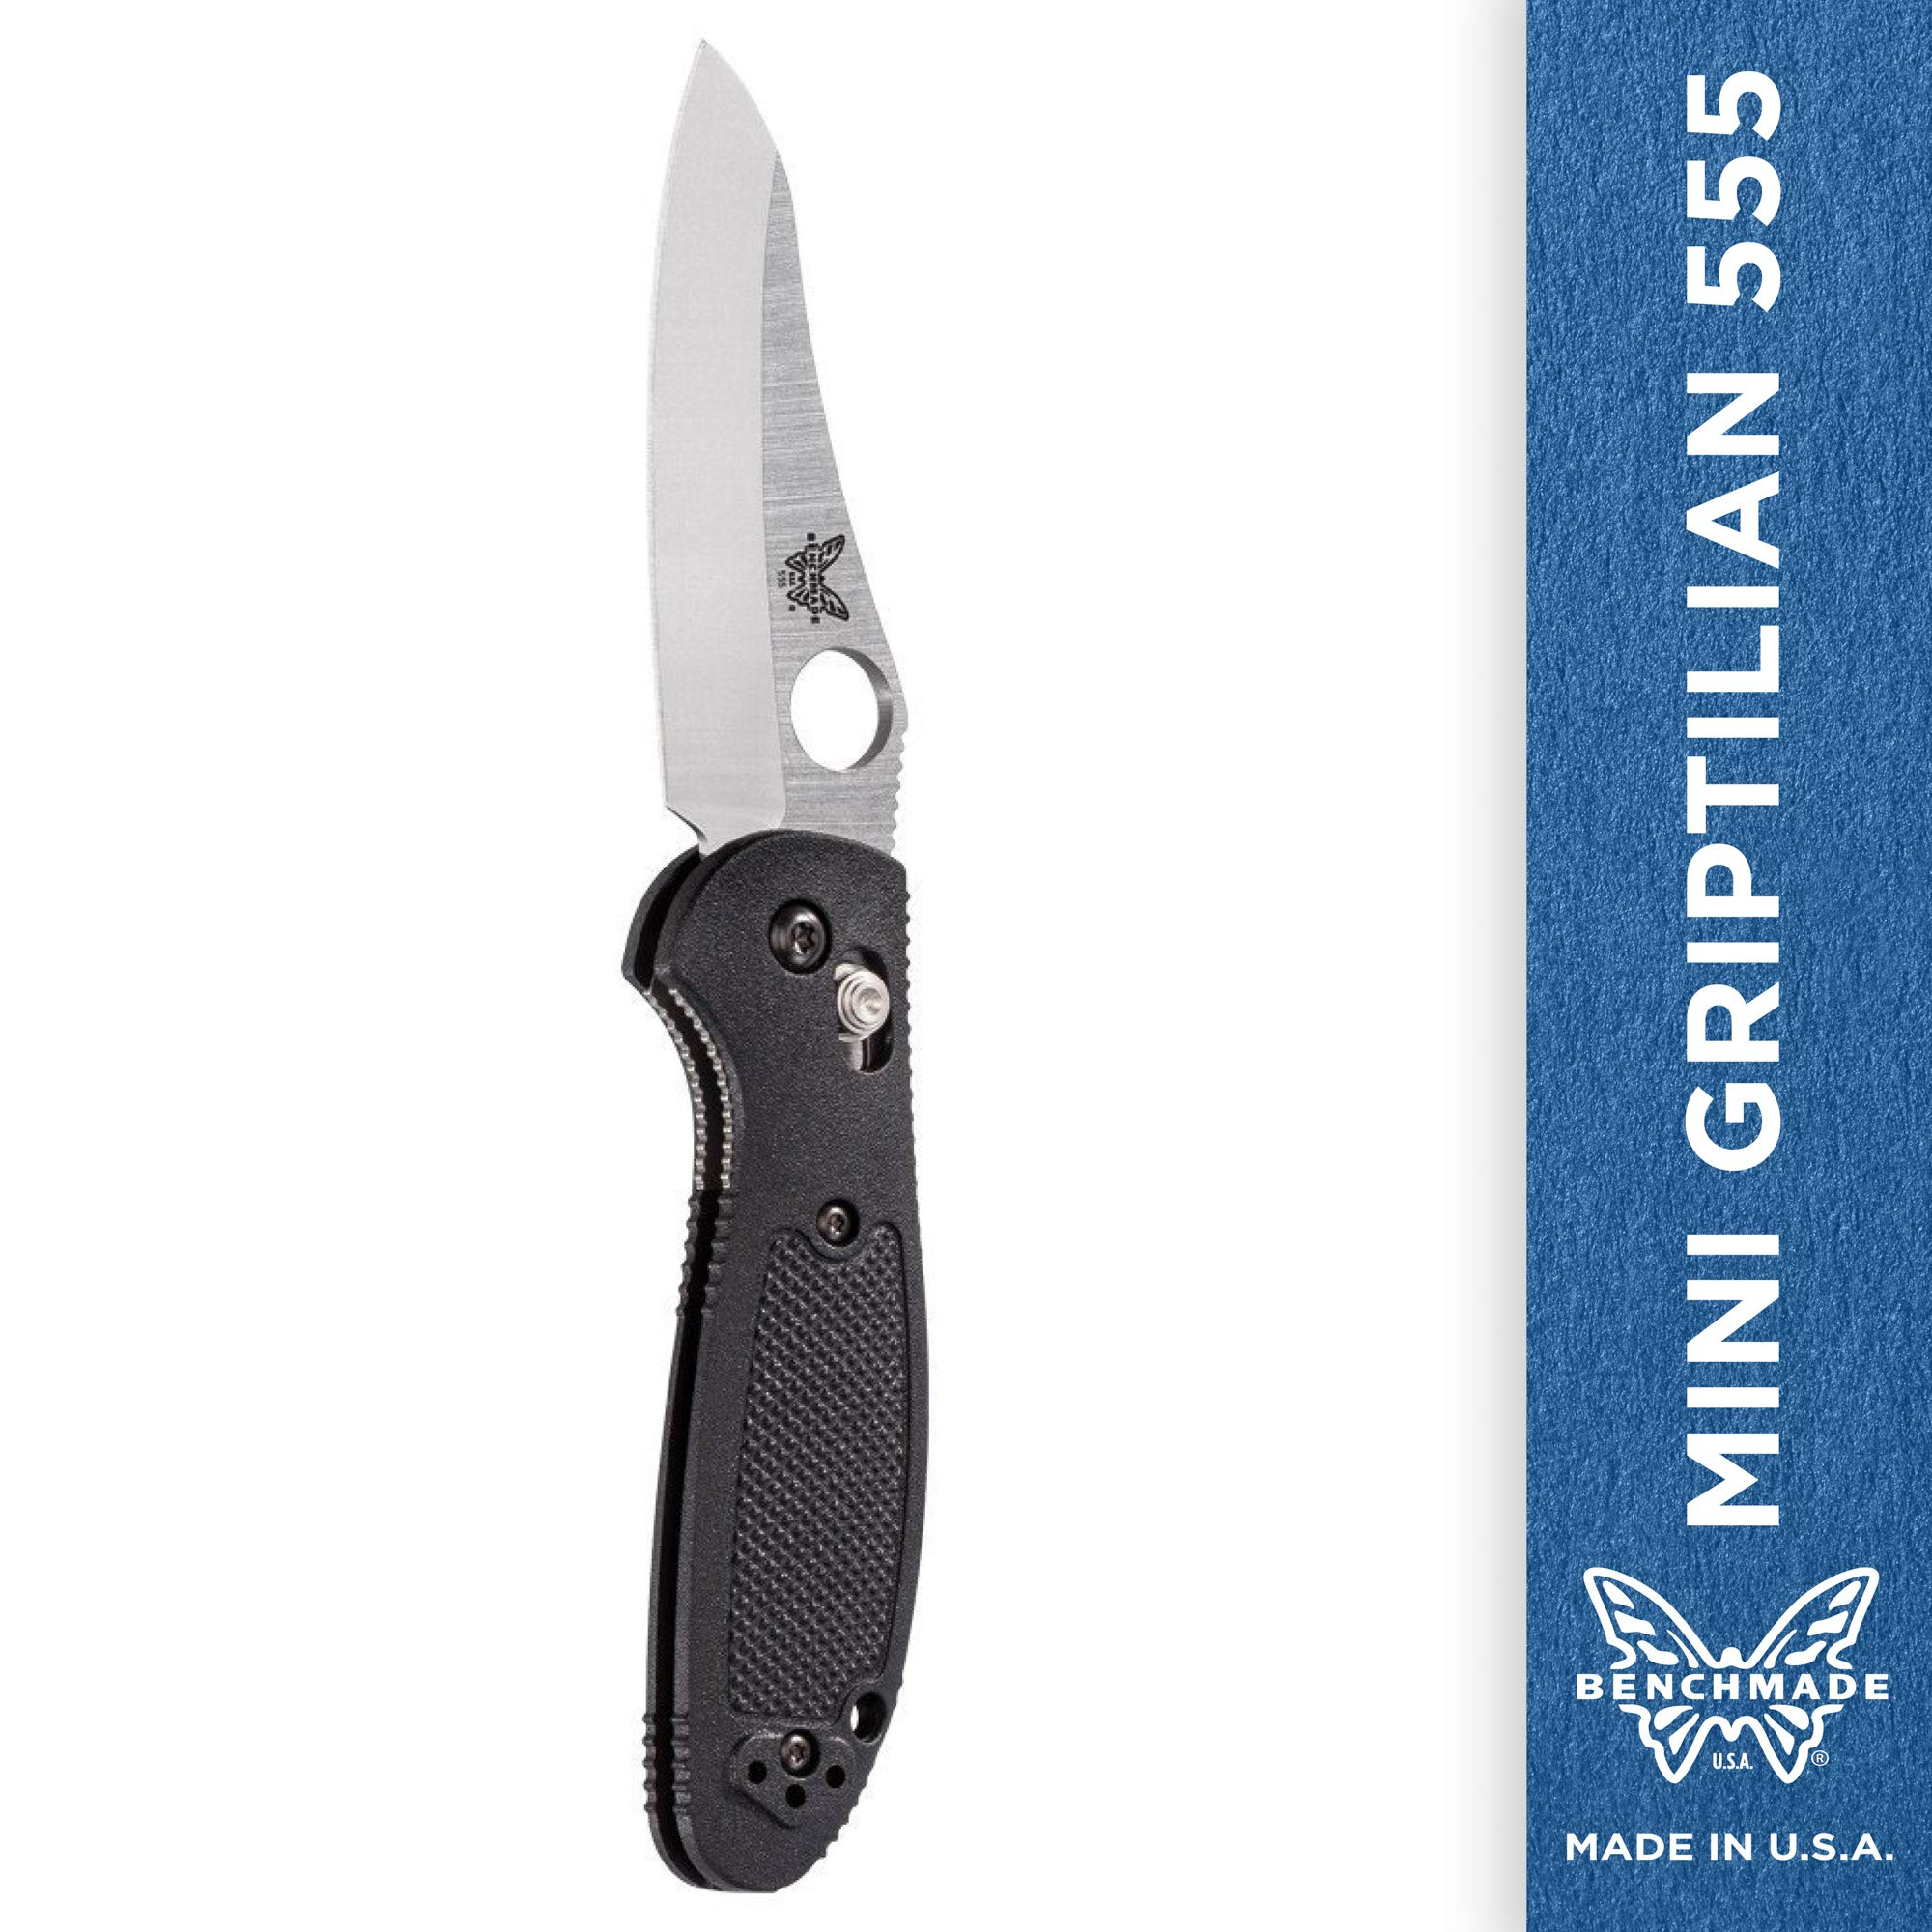 Benchmade - Mini Griptilian 555 Knife with CPM-S30V Steel, Sheepsfoot Blade, Plain Edge, Stain Finish, Black Handle